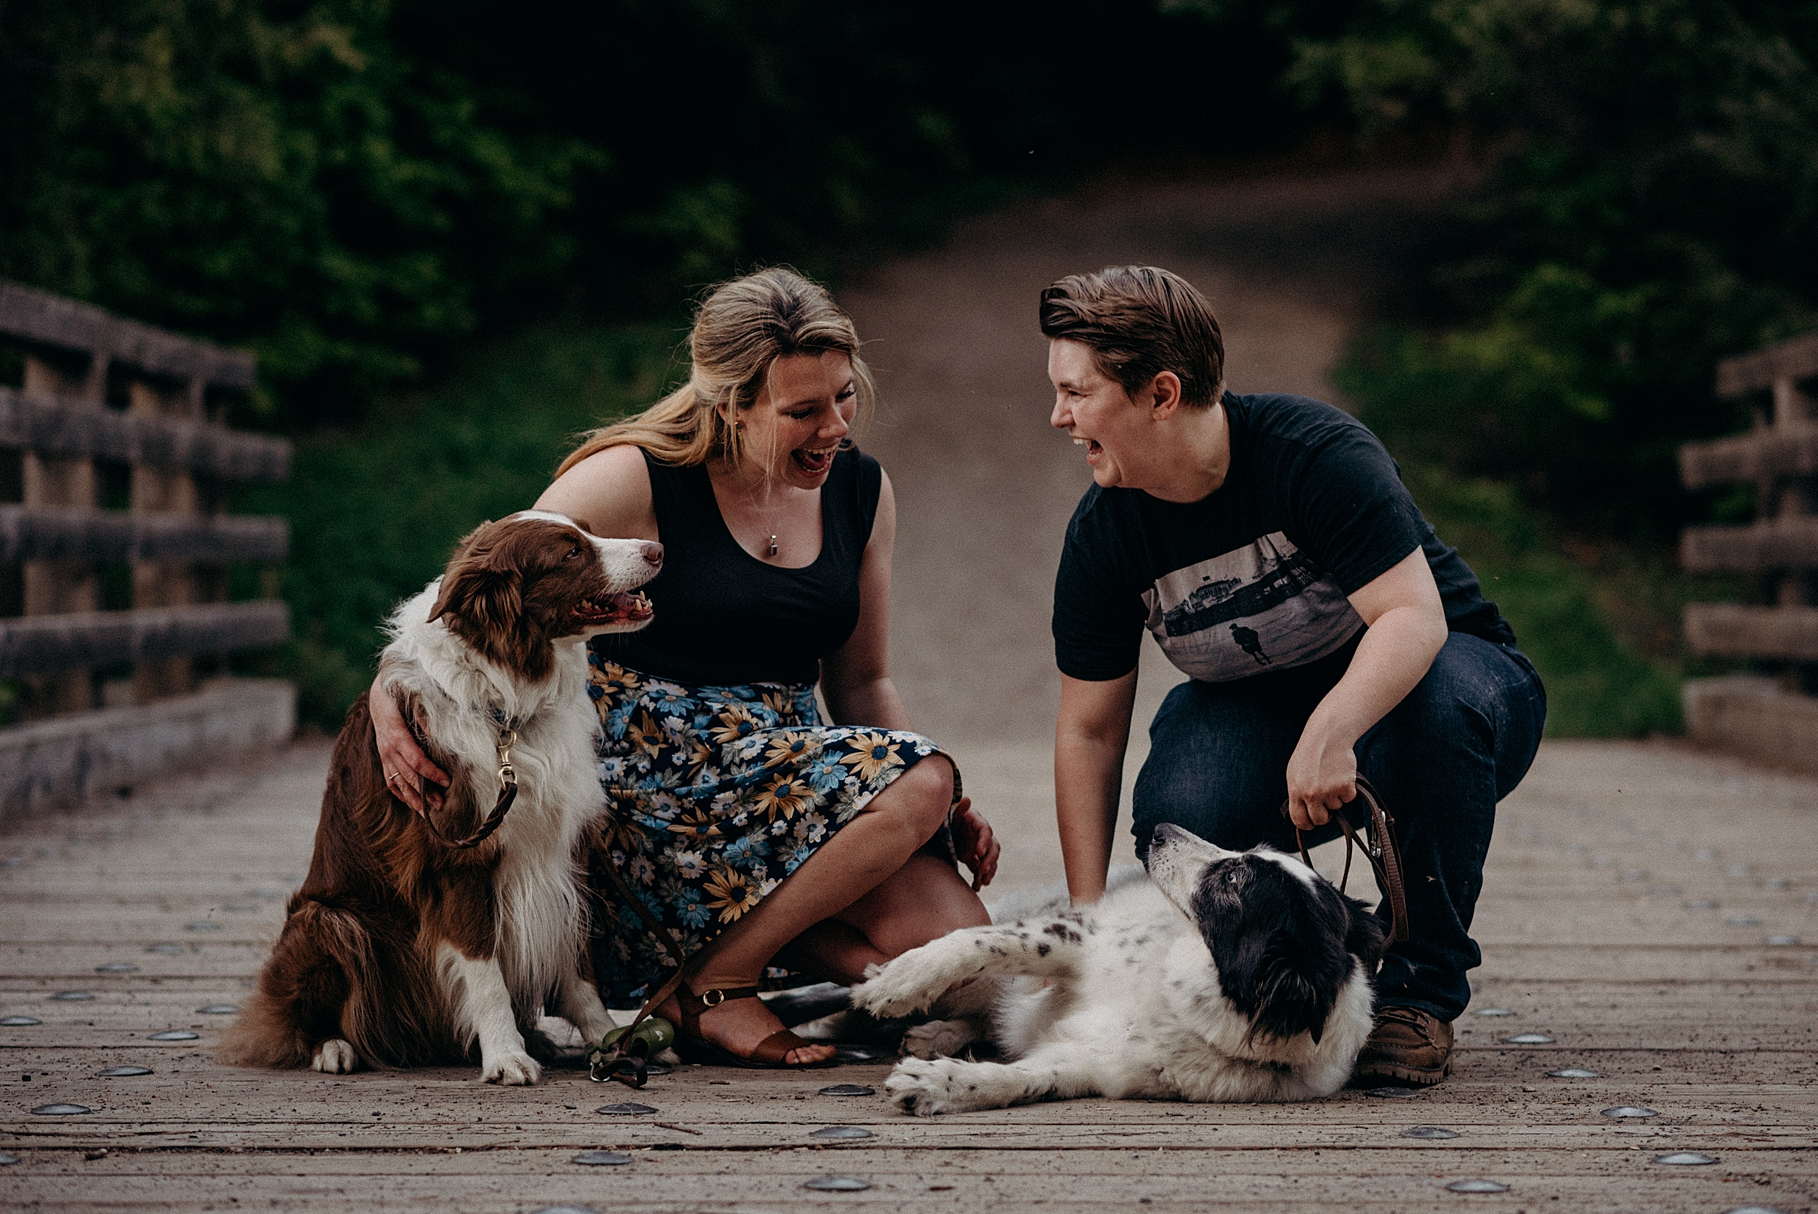 Bringing your Dog or Cat to an engagement session. Mocha Tree Studios Ottawa Toronto Montreal Wedding and Engagement Photographer and Videographer Dark Moody Intimate Authentic Modern Romantic Cinematic Best Candid 7